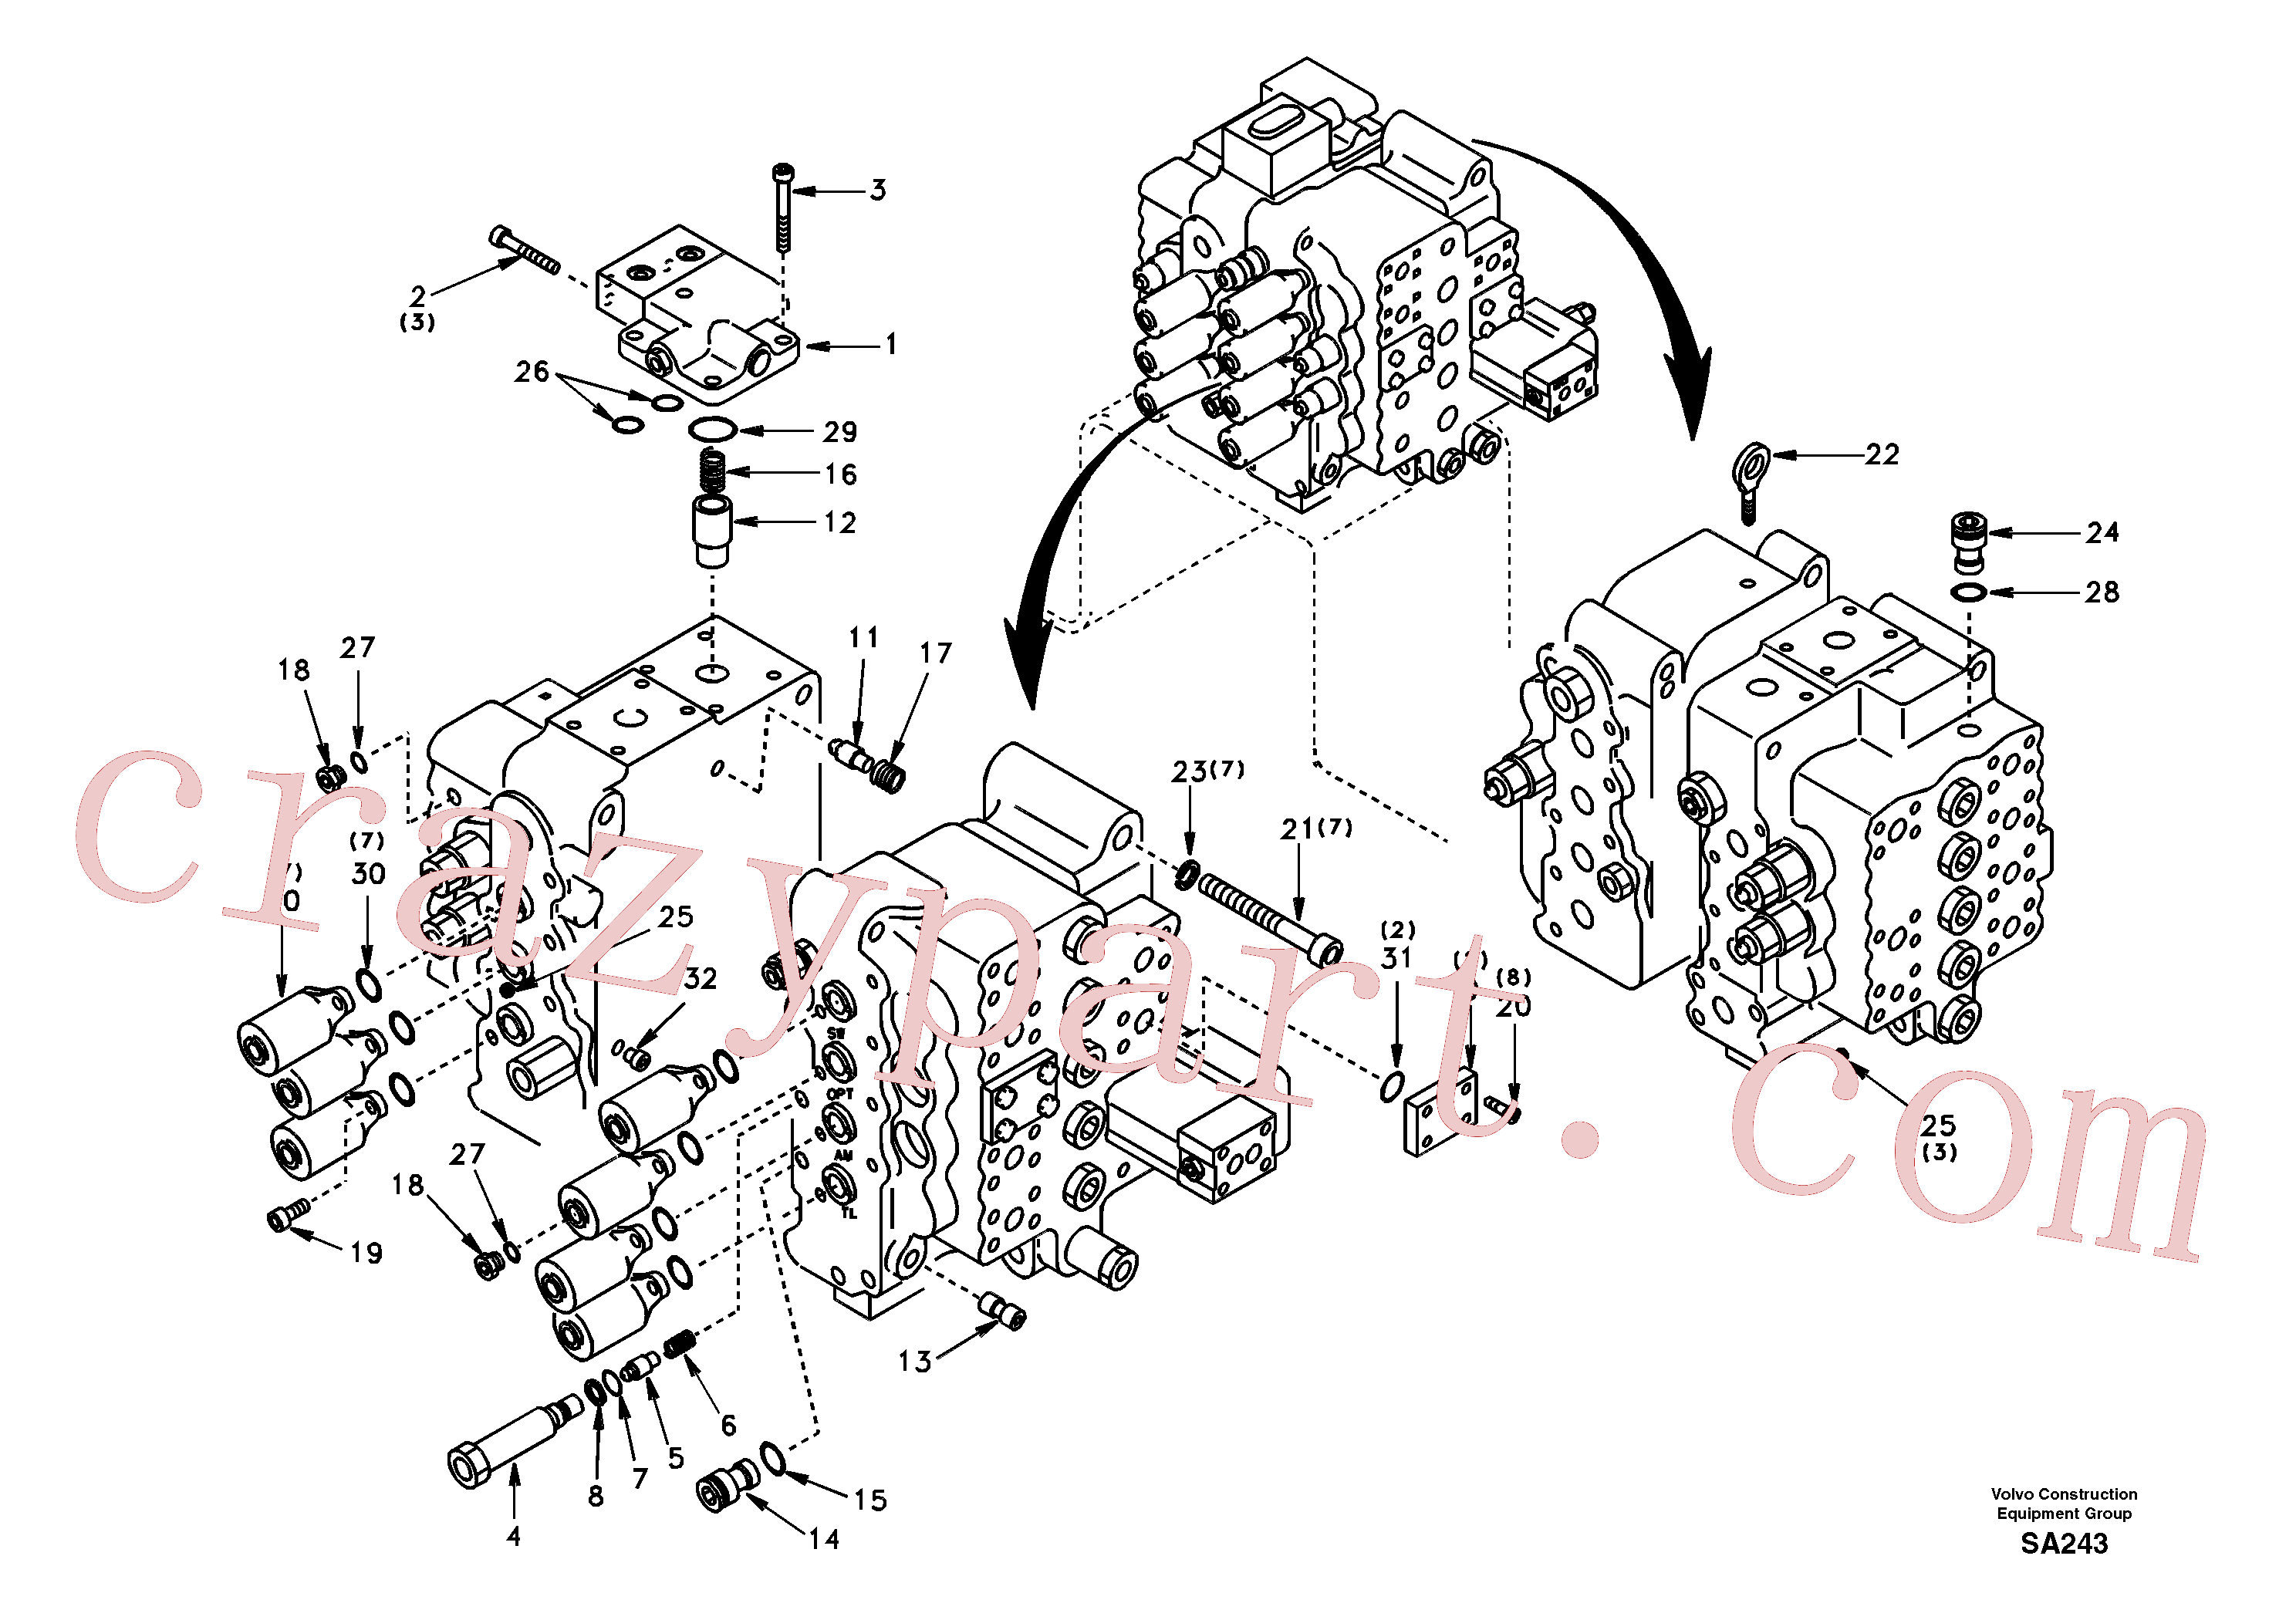 SA7273-10340 for Volvo Control valve with fitting parts.(SA243 assembly)